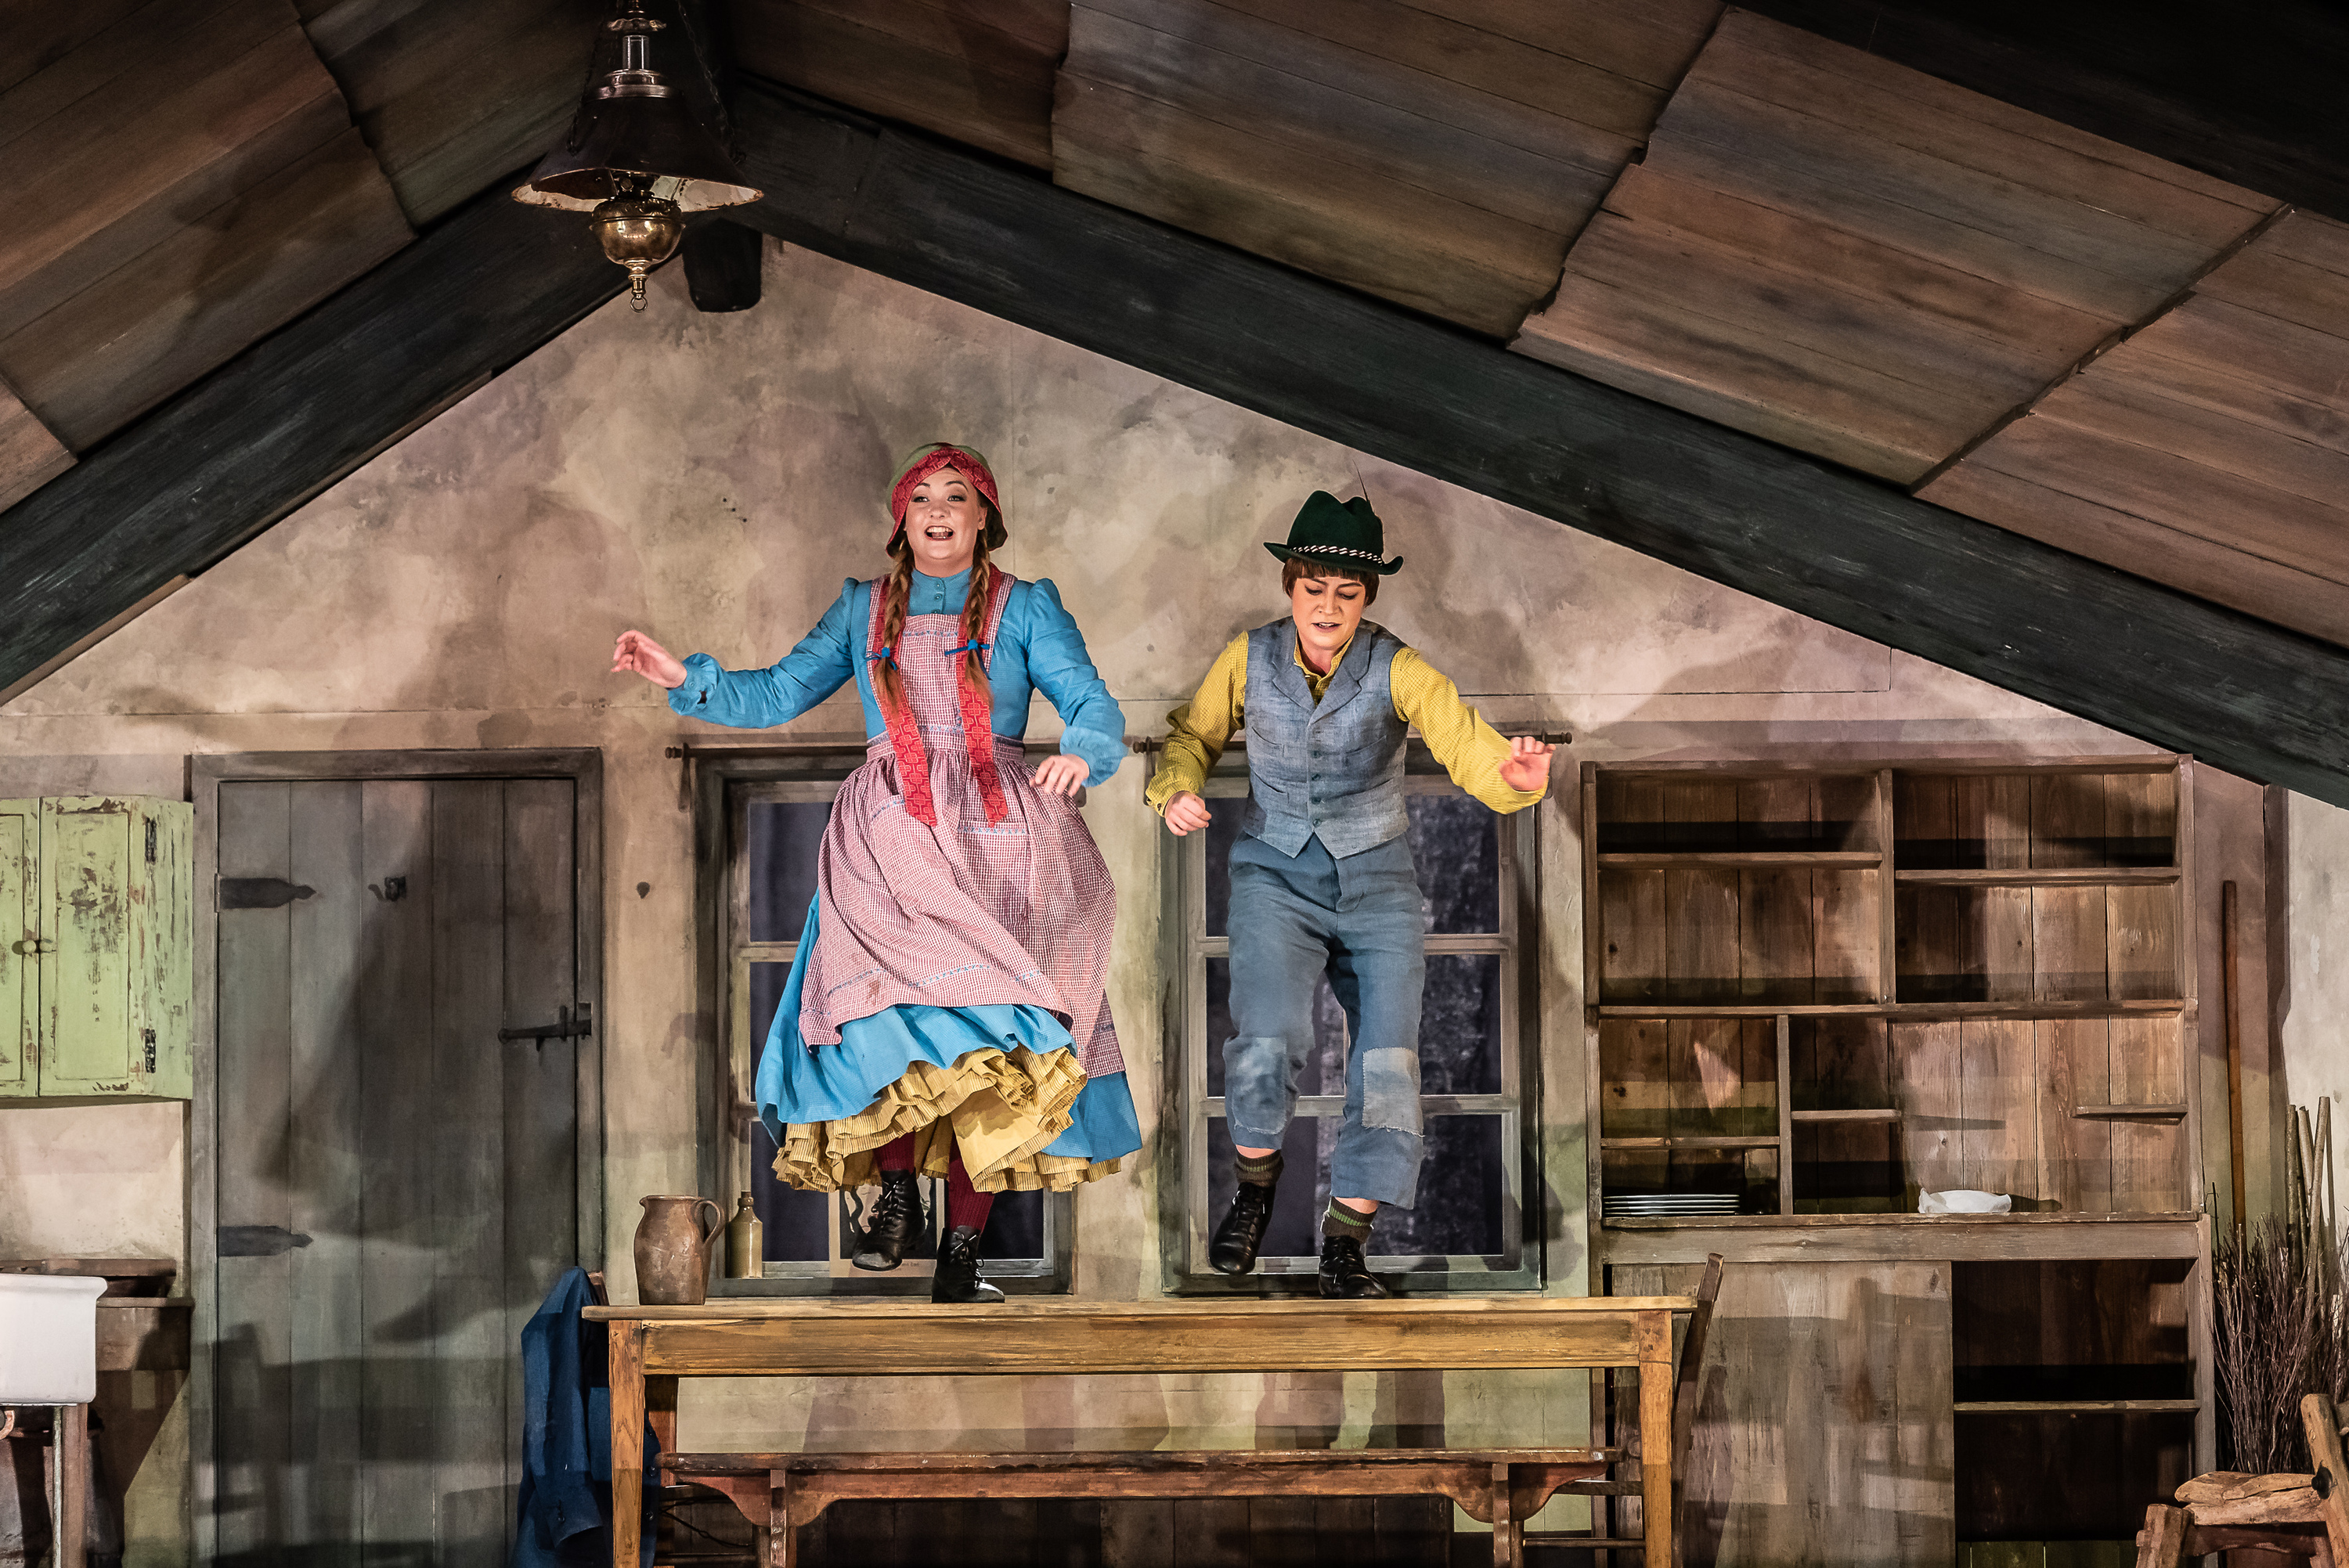 'Hansel and Gretel' review